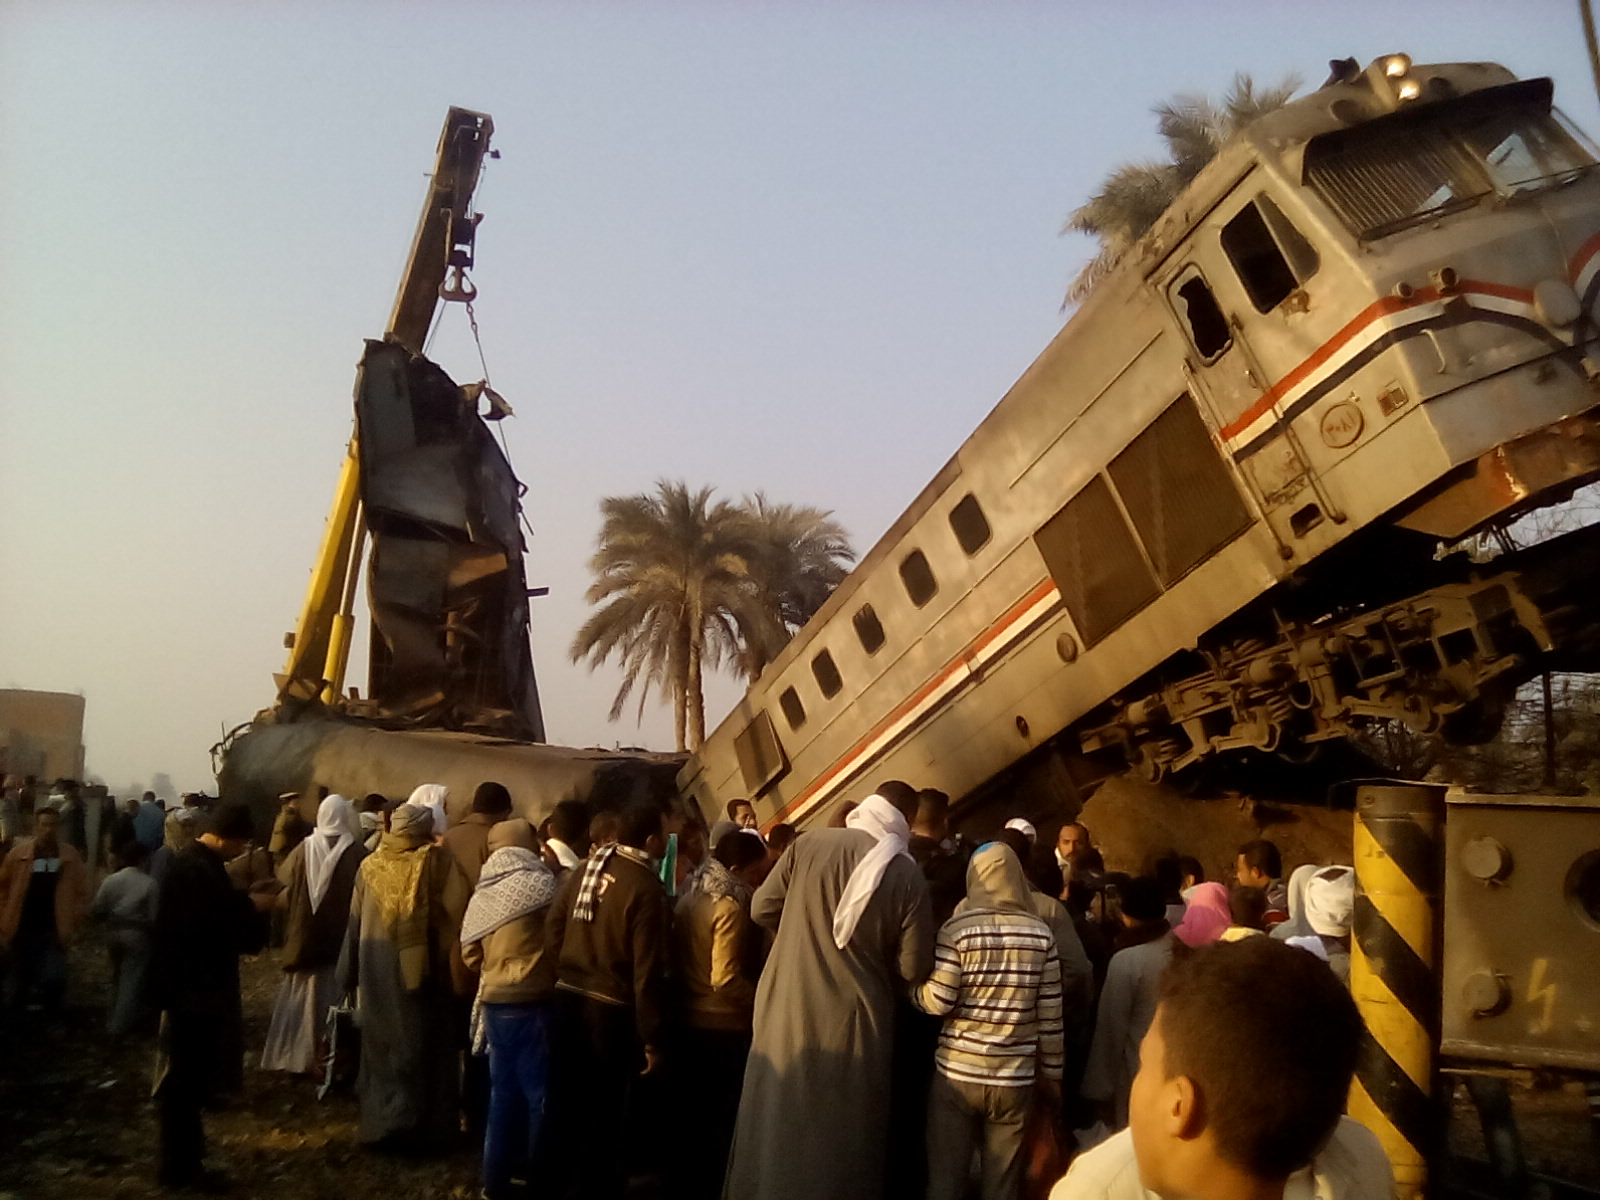 The site of a train crash in Egypt's Beni Suef province, February 11, 2016 (Photo: Aswat Masriya)